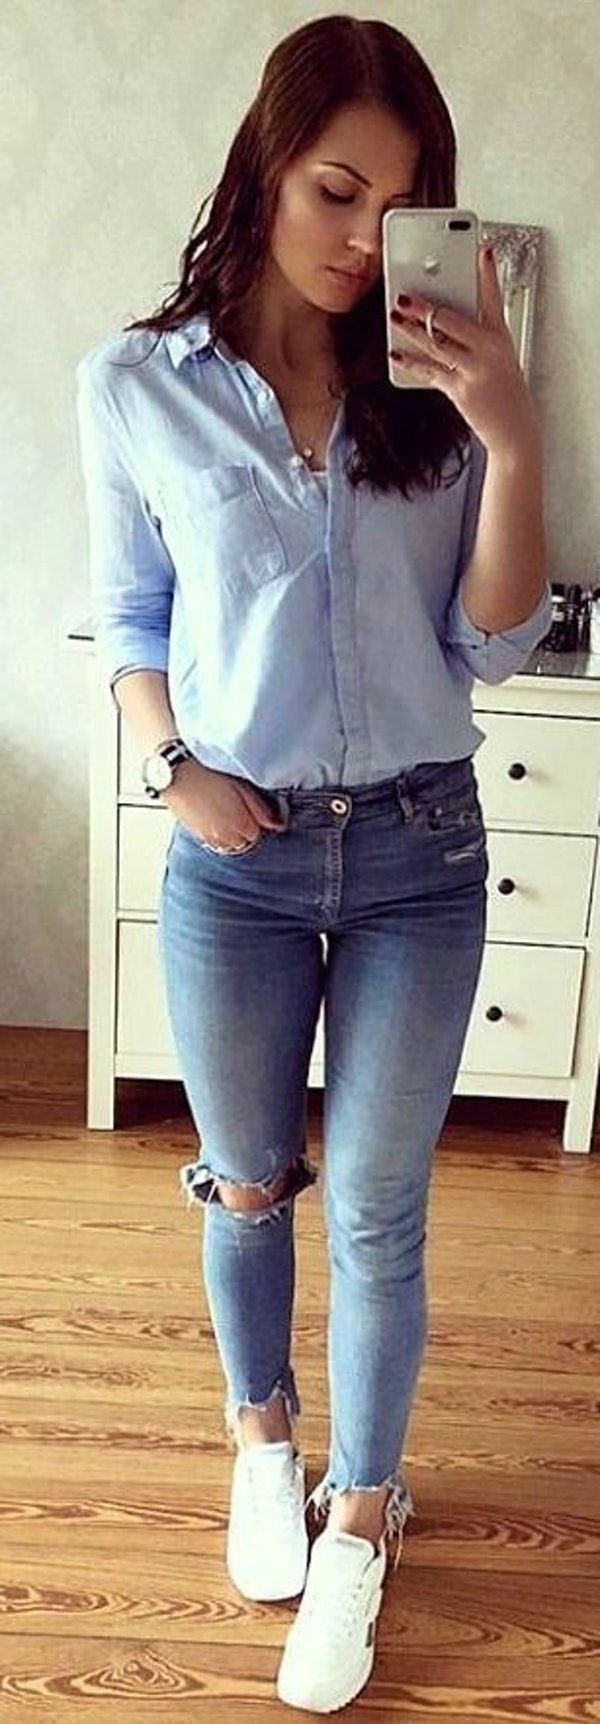 #spring #outfits  woman in blue button-up long-sleeved top and blue distressed jeans taking photo in front of mirror. Pic by @selectionhub